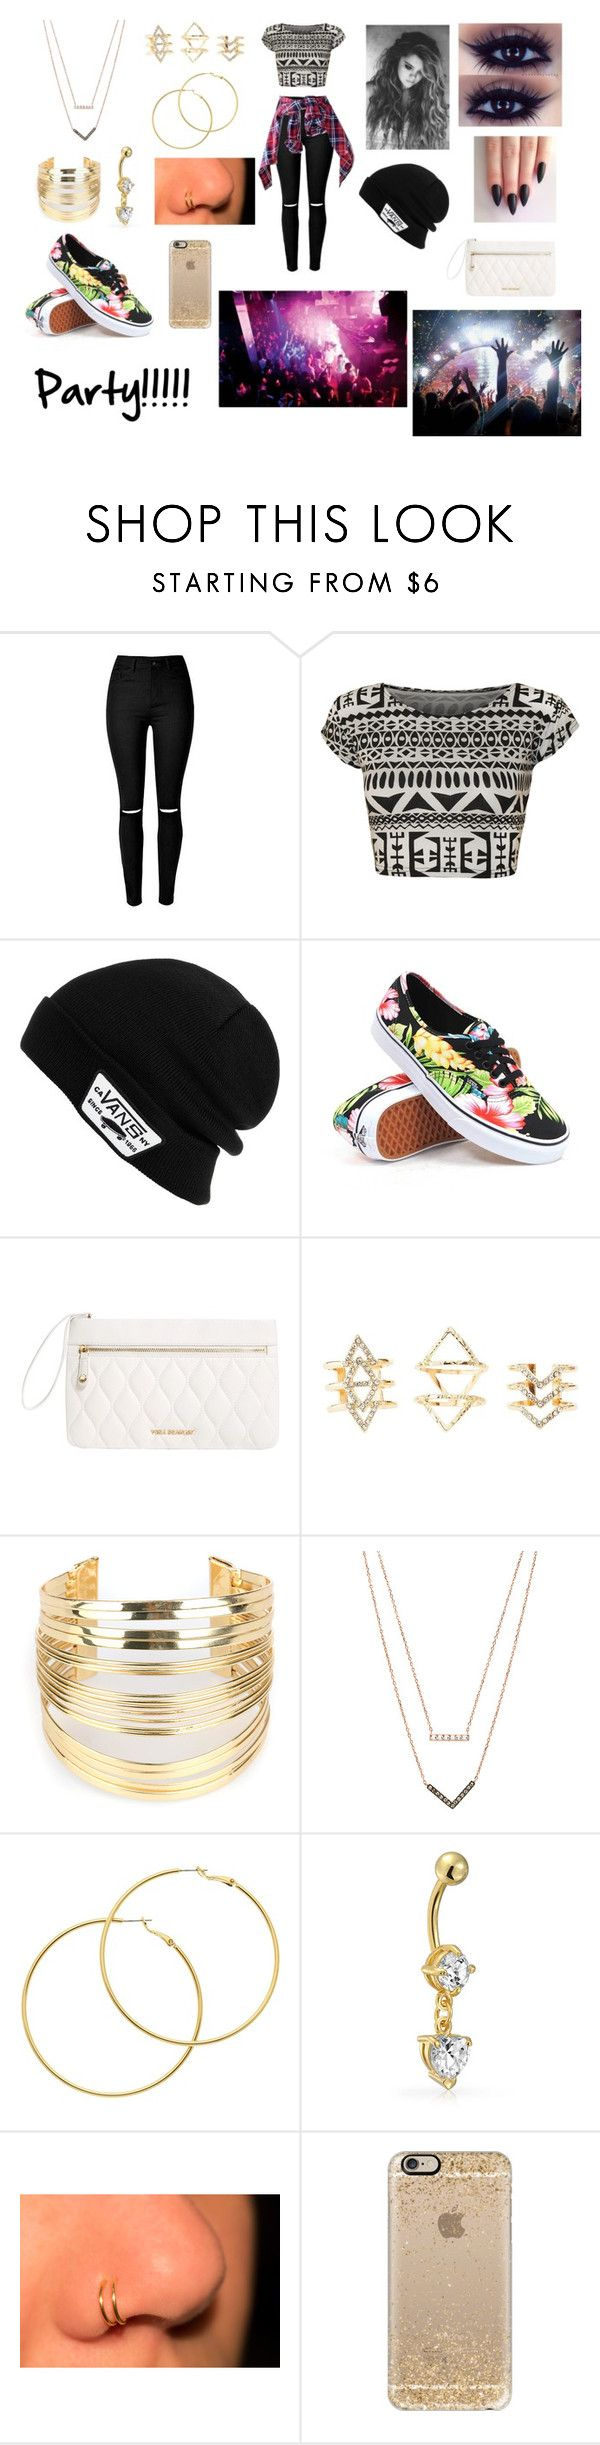 """""""High School Party!!! #1"""" by allisenthornal ❤ liked on Polyvore featuring moda, WearAll, Vans, Vera Bradley, Pacha, Charlotte Russe, WithChic, Michael Kors, Melissa Odabash e Bling Jewelry"""